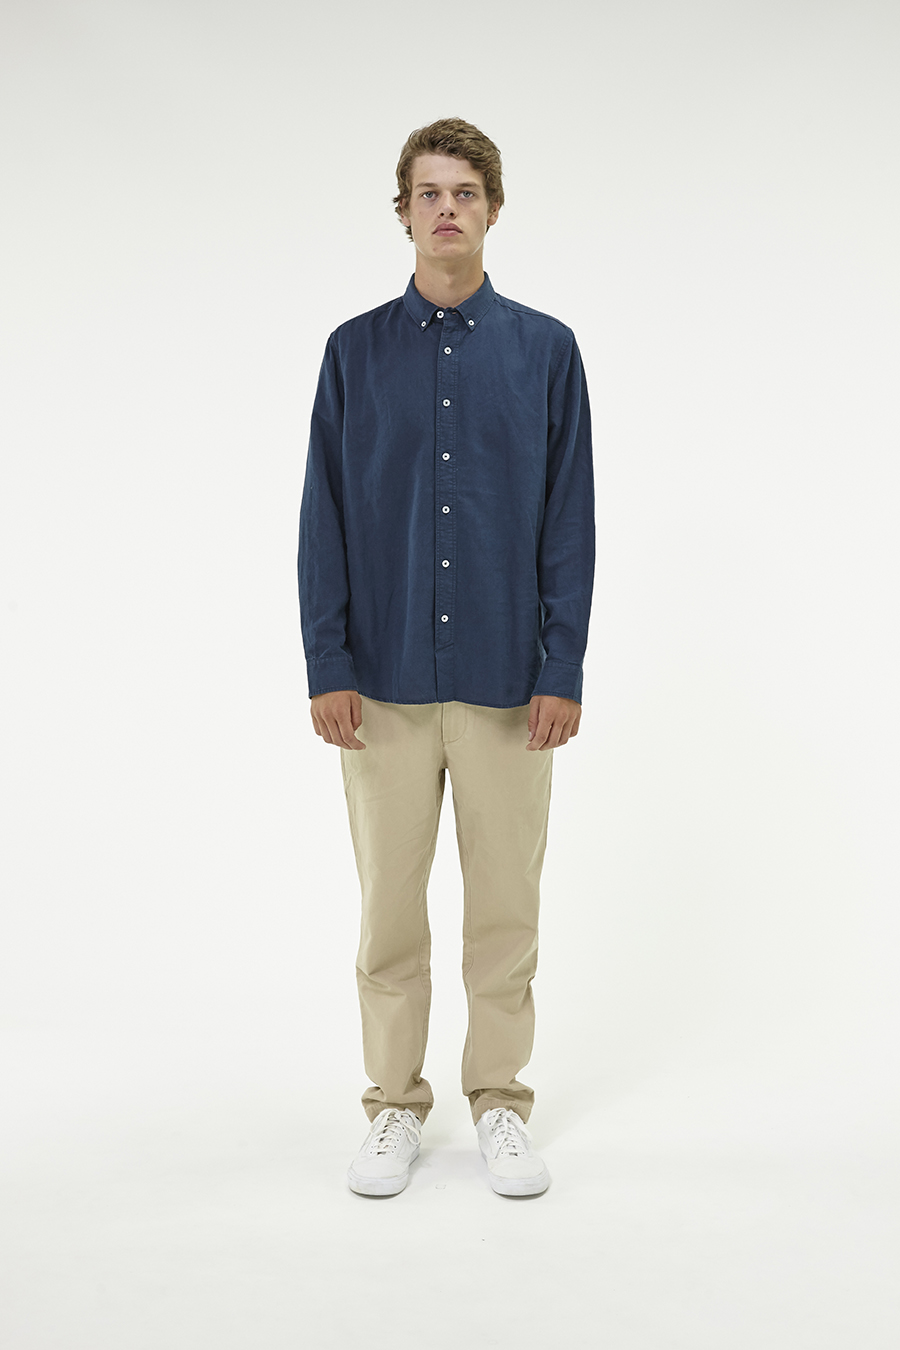 Huffer_Q3-16_M-The-Lin-In-Shirt_Navy-01